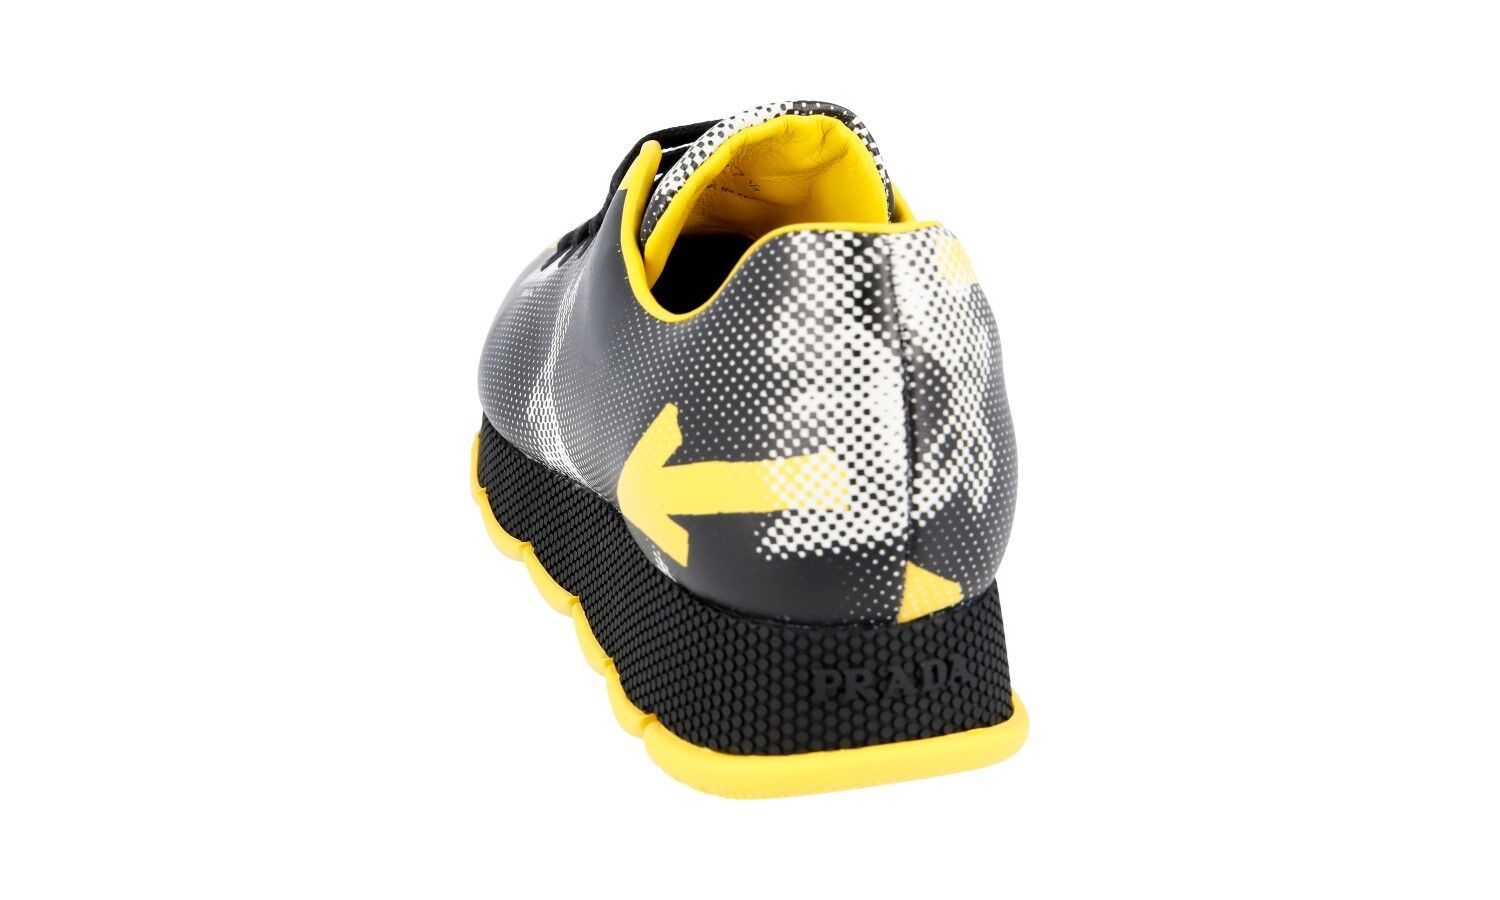 AUTH LUXURY PRADA SNEAKERS SNEAKERS SNEAKERS SHOES 1E654G BLACK YELLOW NEW 39,5 40 UK 6.5 53f4ef